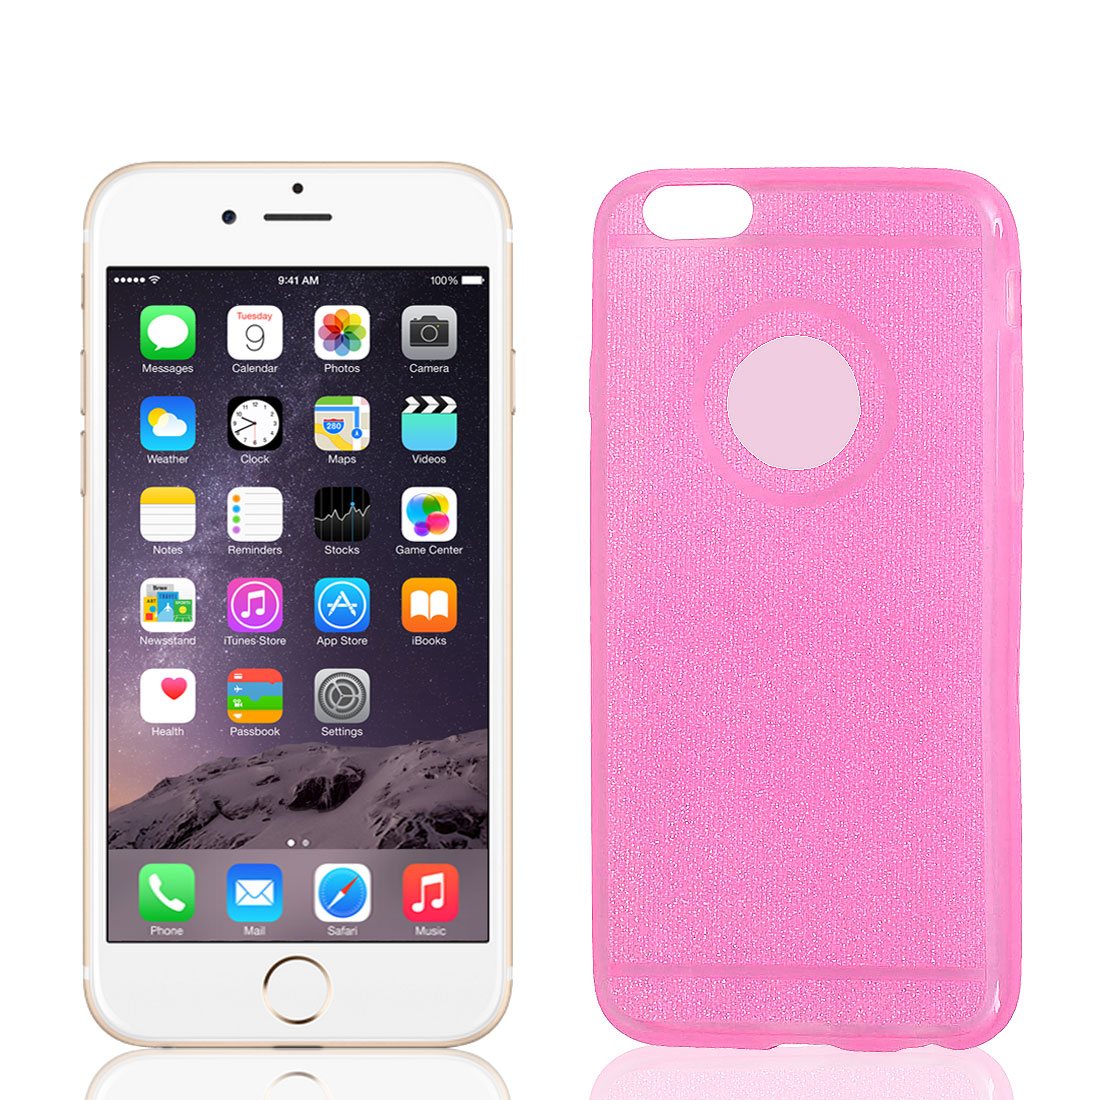 TPU Ultra Thin Glitter Powder Bumper Cover Case Shell Pink for iPhone 6 4.7""